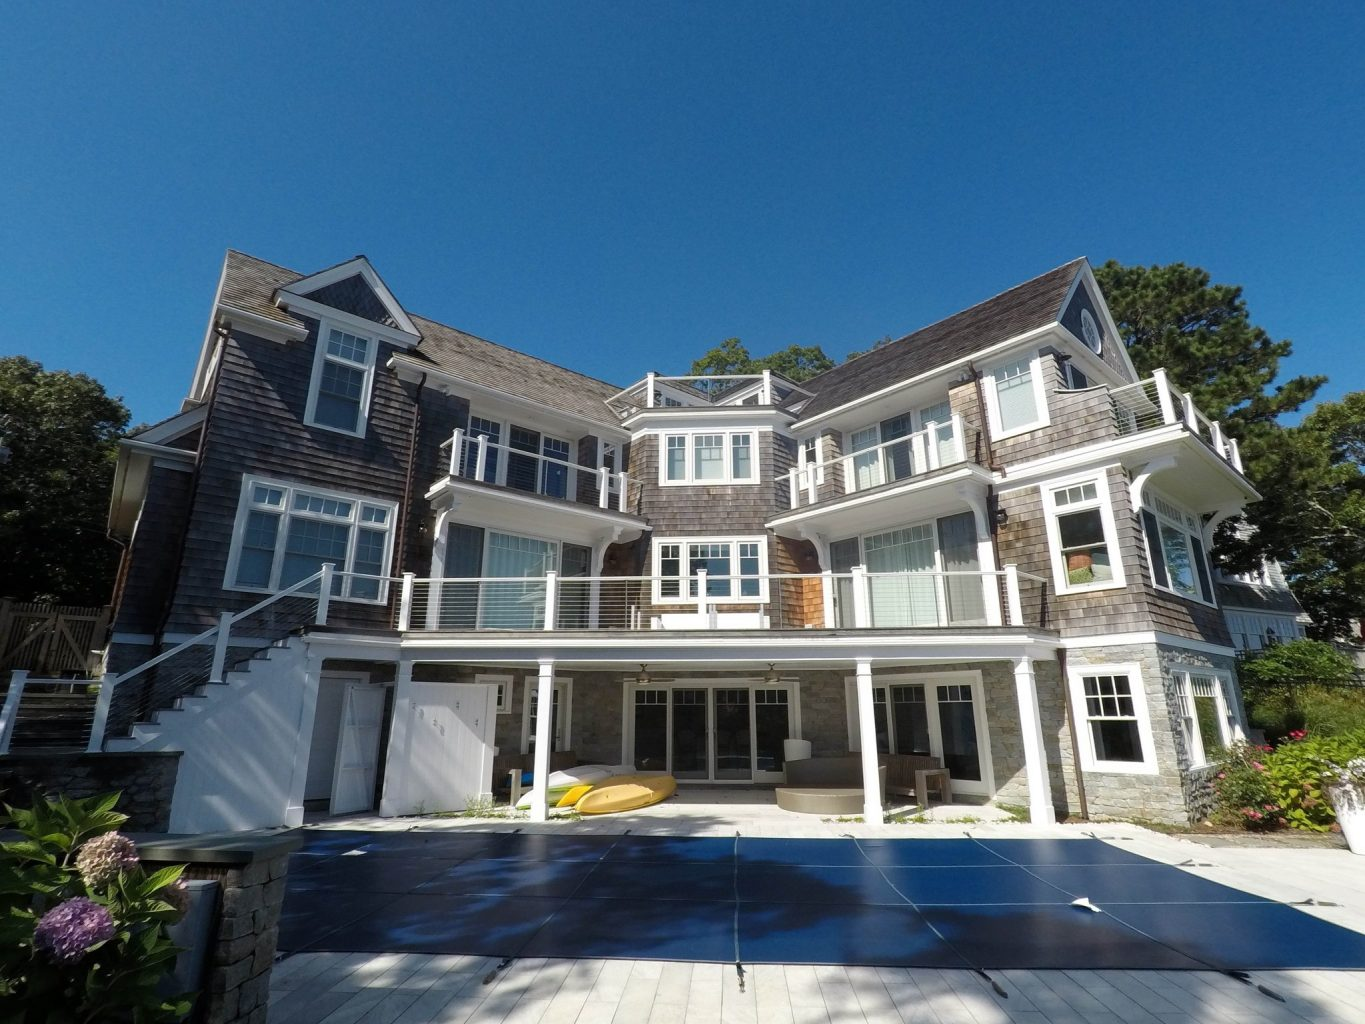 Large three level custom Cape Cod home with outdoor pool patio